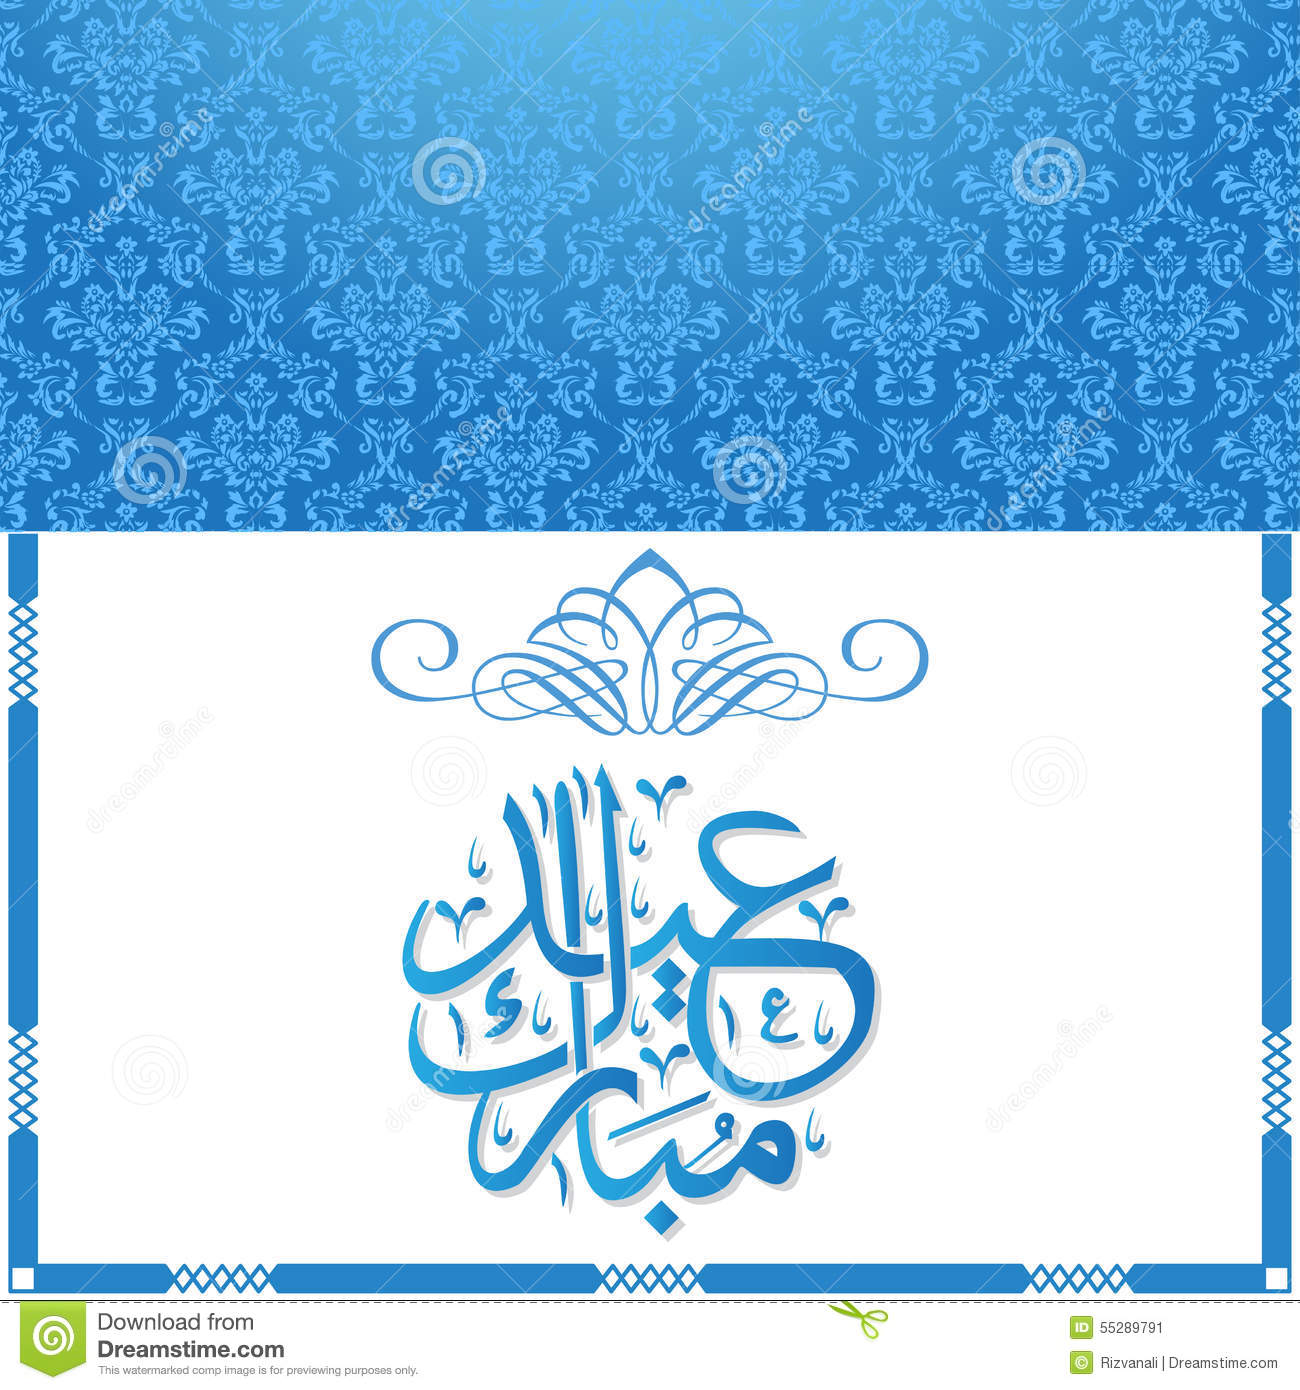 Eid ul fitr greeting card stock vector illustration of background download eid ul fitr greeting card stock vector illustration of background 55289791 m4hsunfo